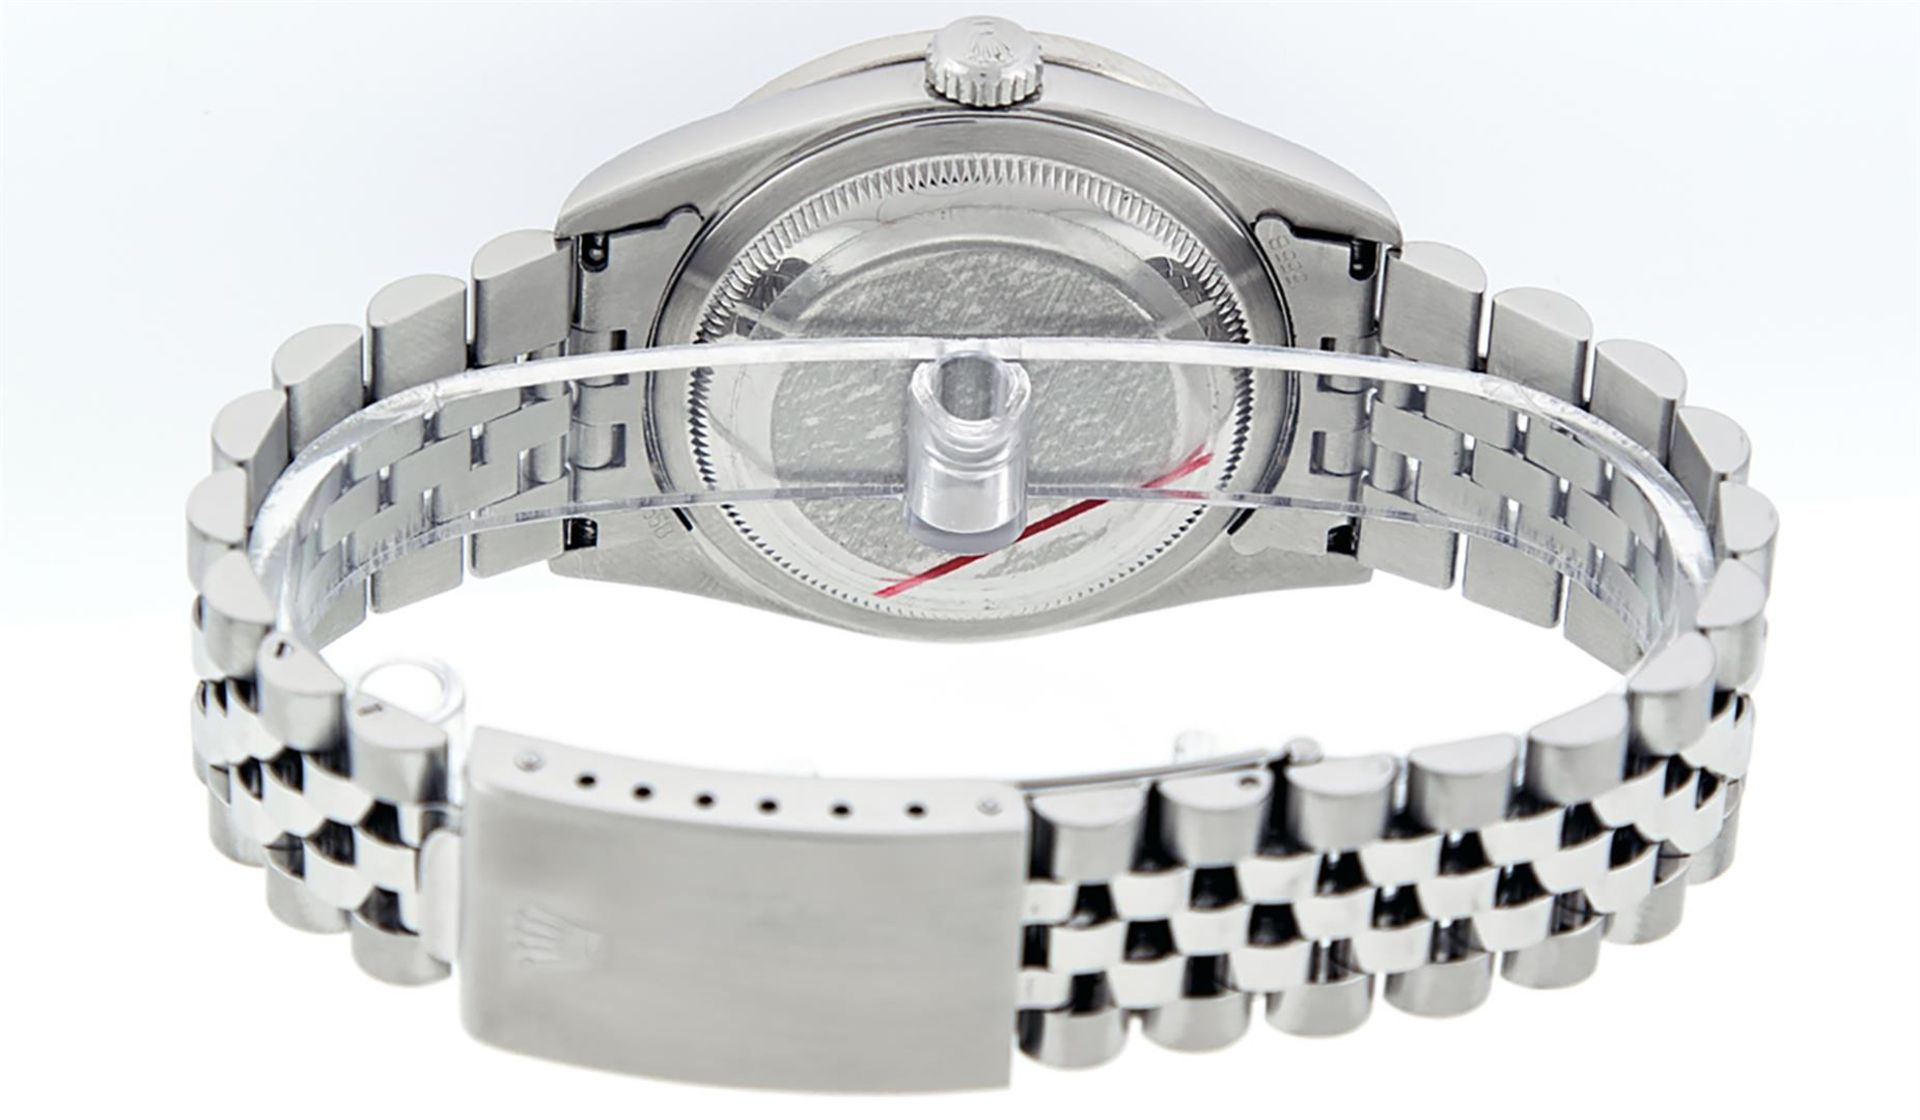 Rolex Mens Stainless Steel Mother Of Pearl Diamond 36MM Datejust Wristwatch - Image 5 of 8